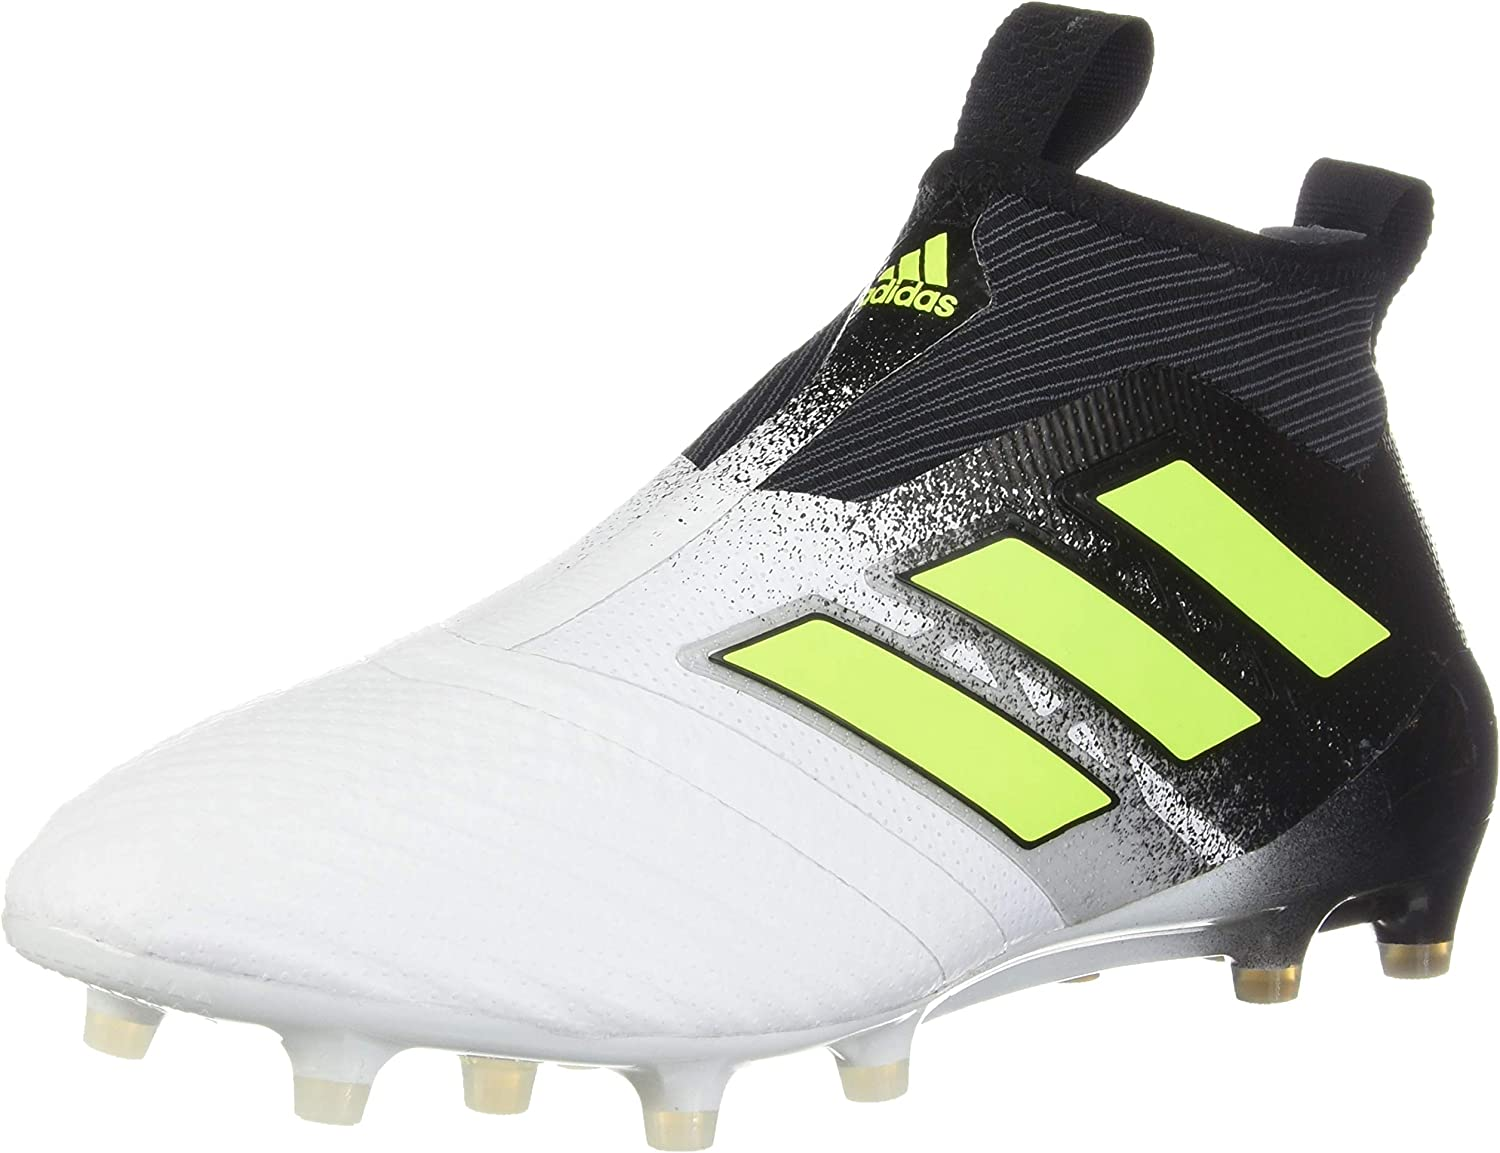 esaurimento Anche Pickering  Amazon.com | adidas Men's ACE 17+ PURECONTROL Soccer Cleat | Soccer